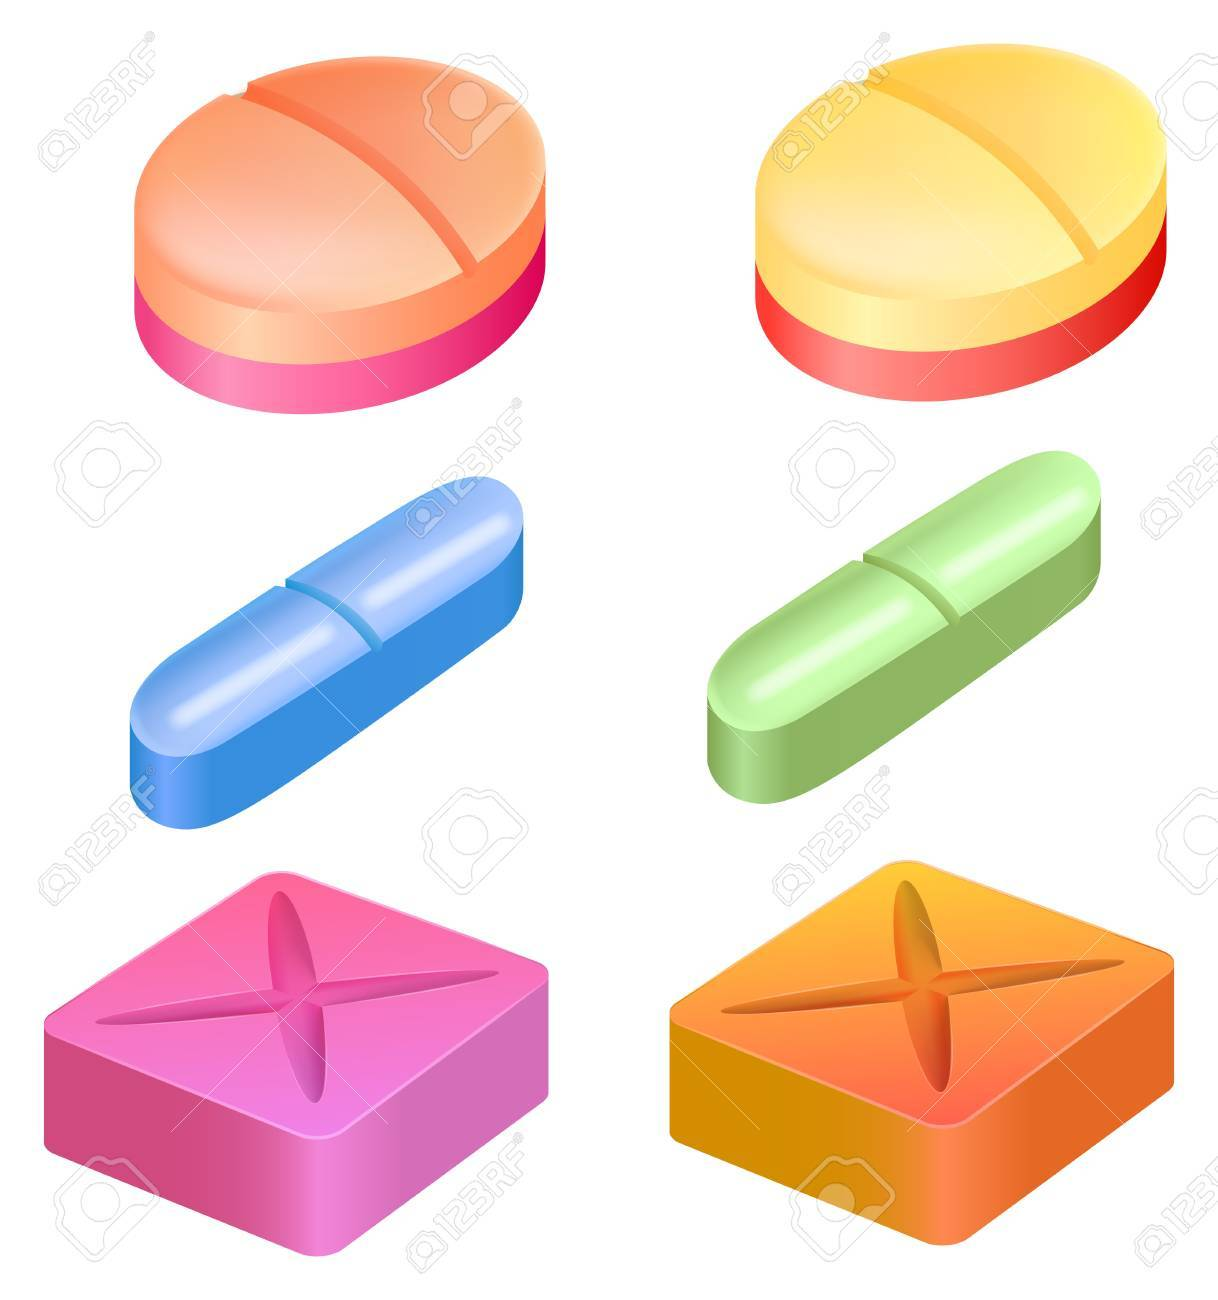 Illustration showing the shapes of medicinal pills Stock Vector - 20679967